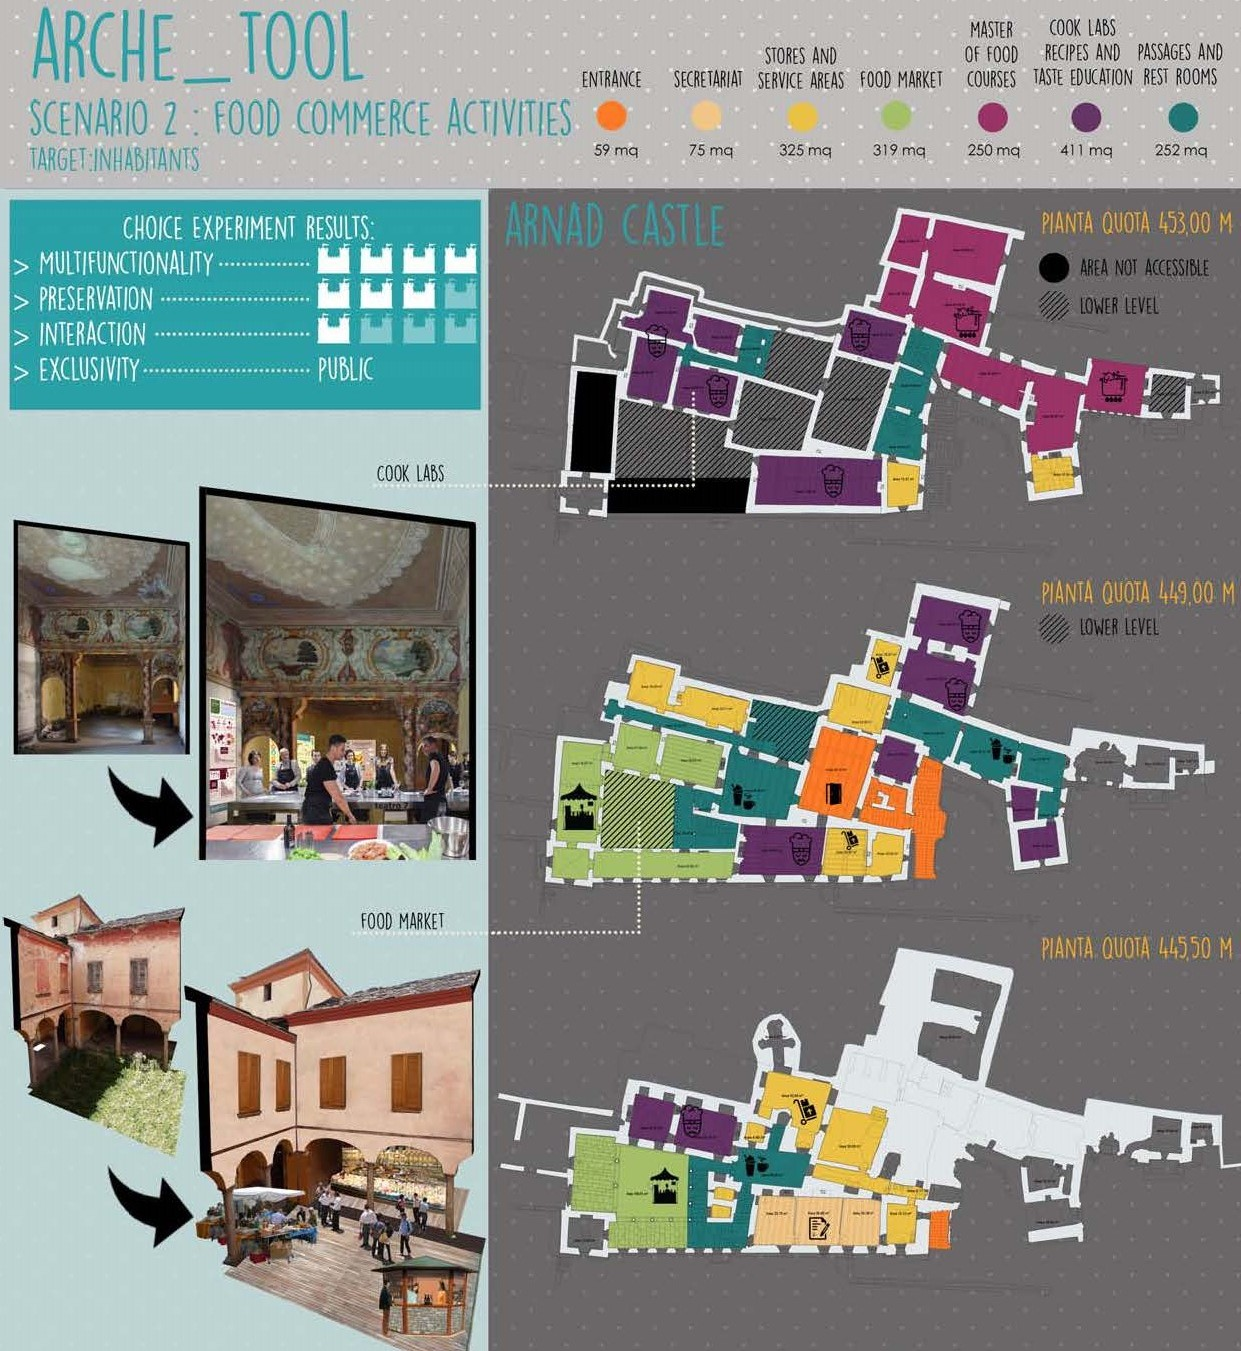 ARCHe_Tool: Adaptive Reuse of Cultural Heritage